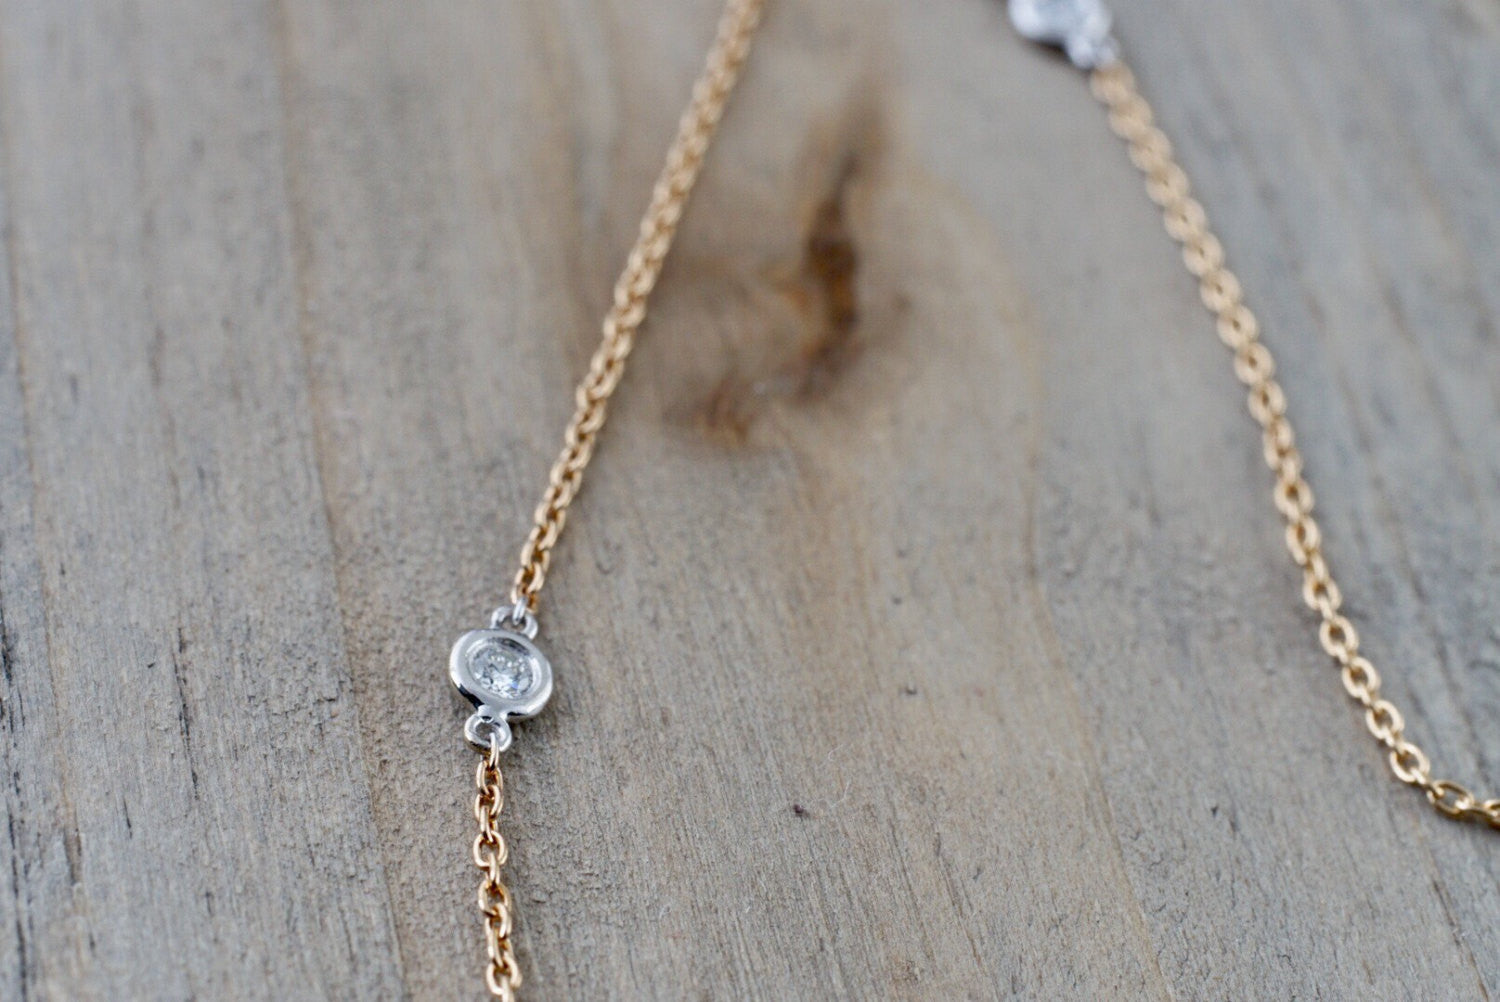 18k Rose and White Gold 5 Diamond Necklace Chain Dainty 16inches